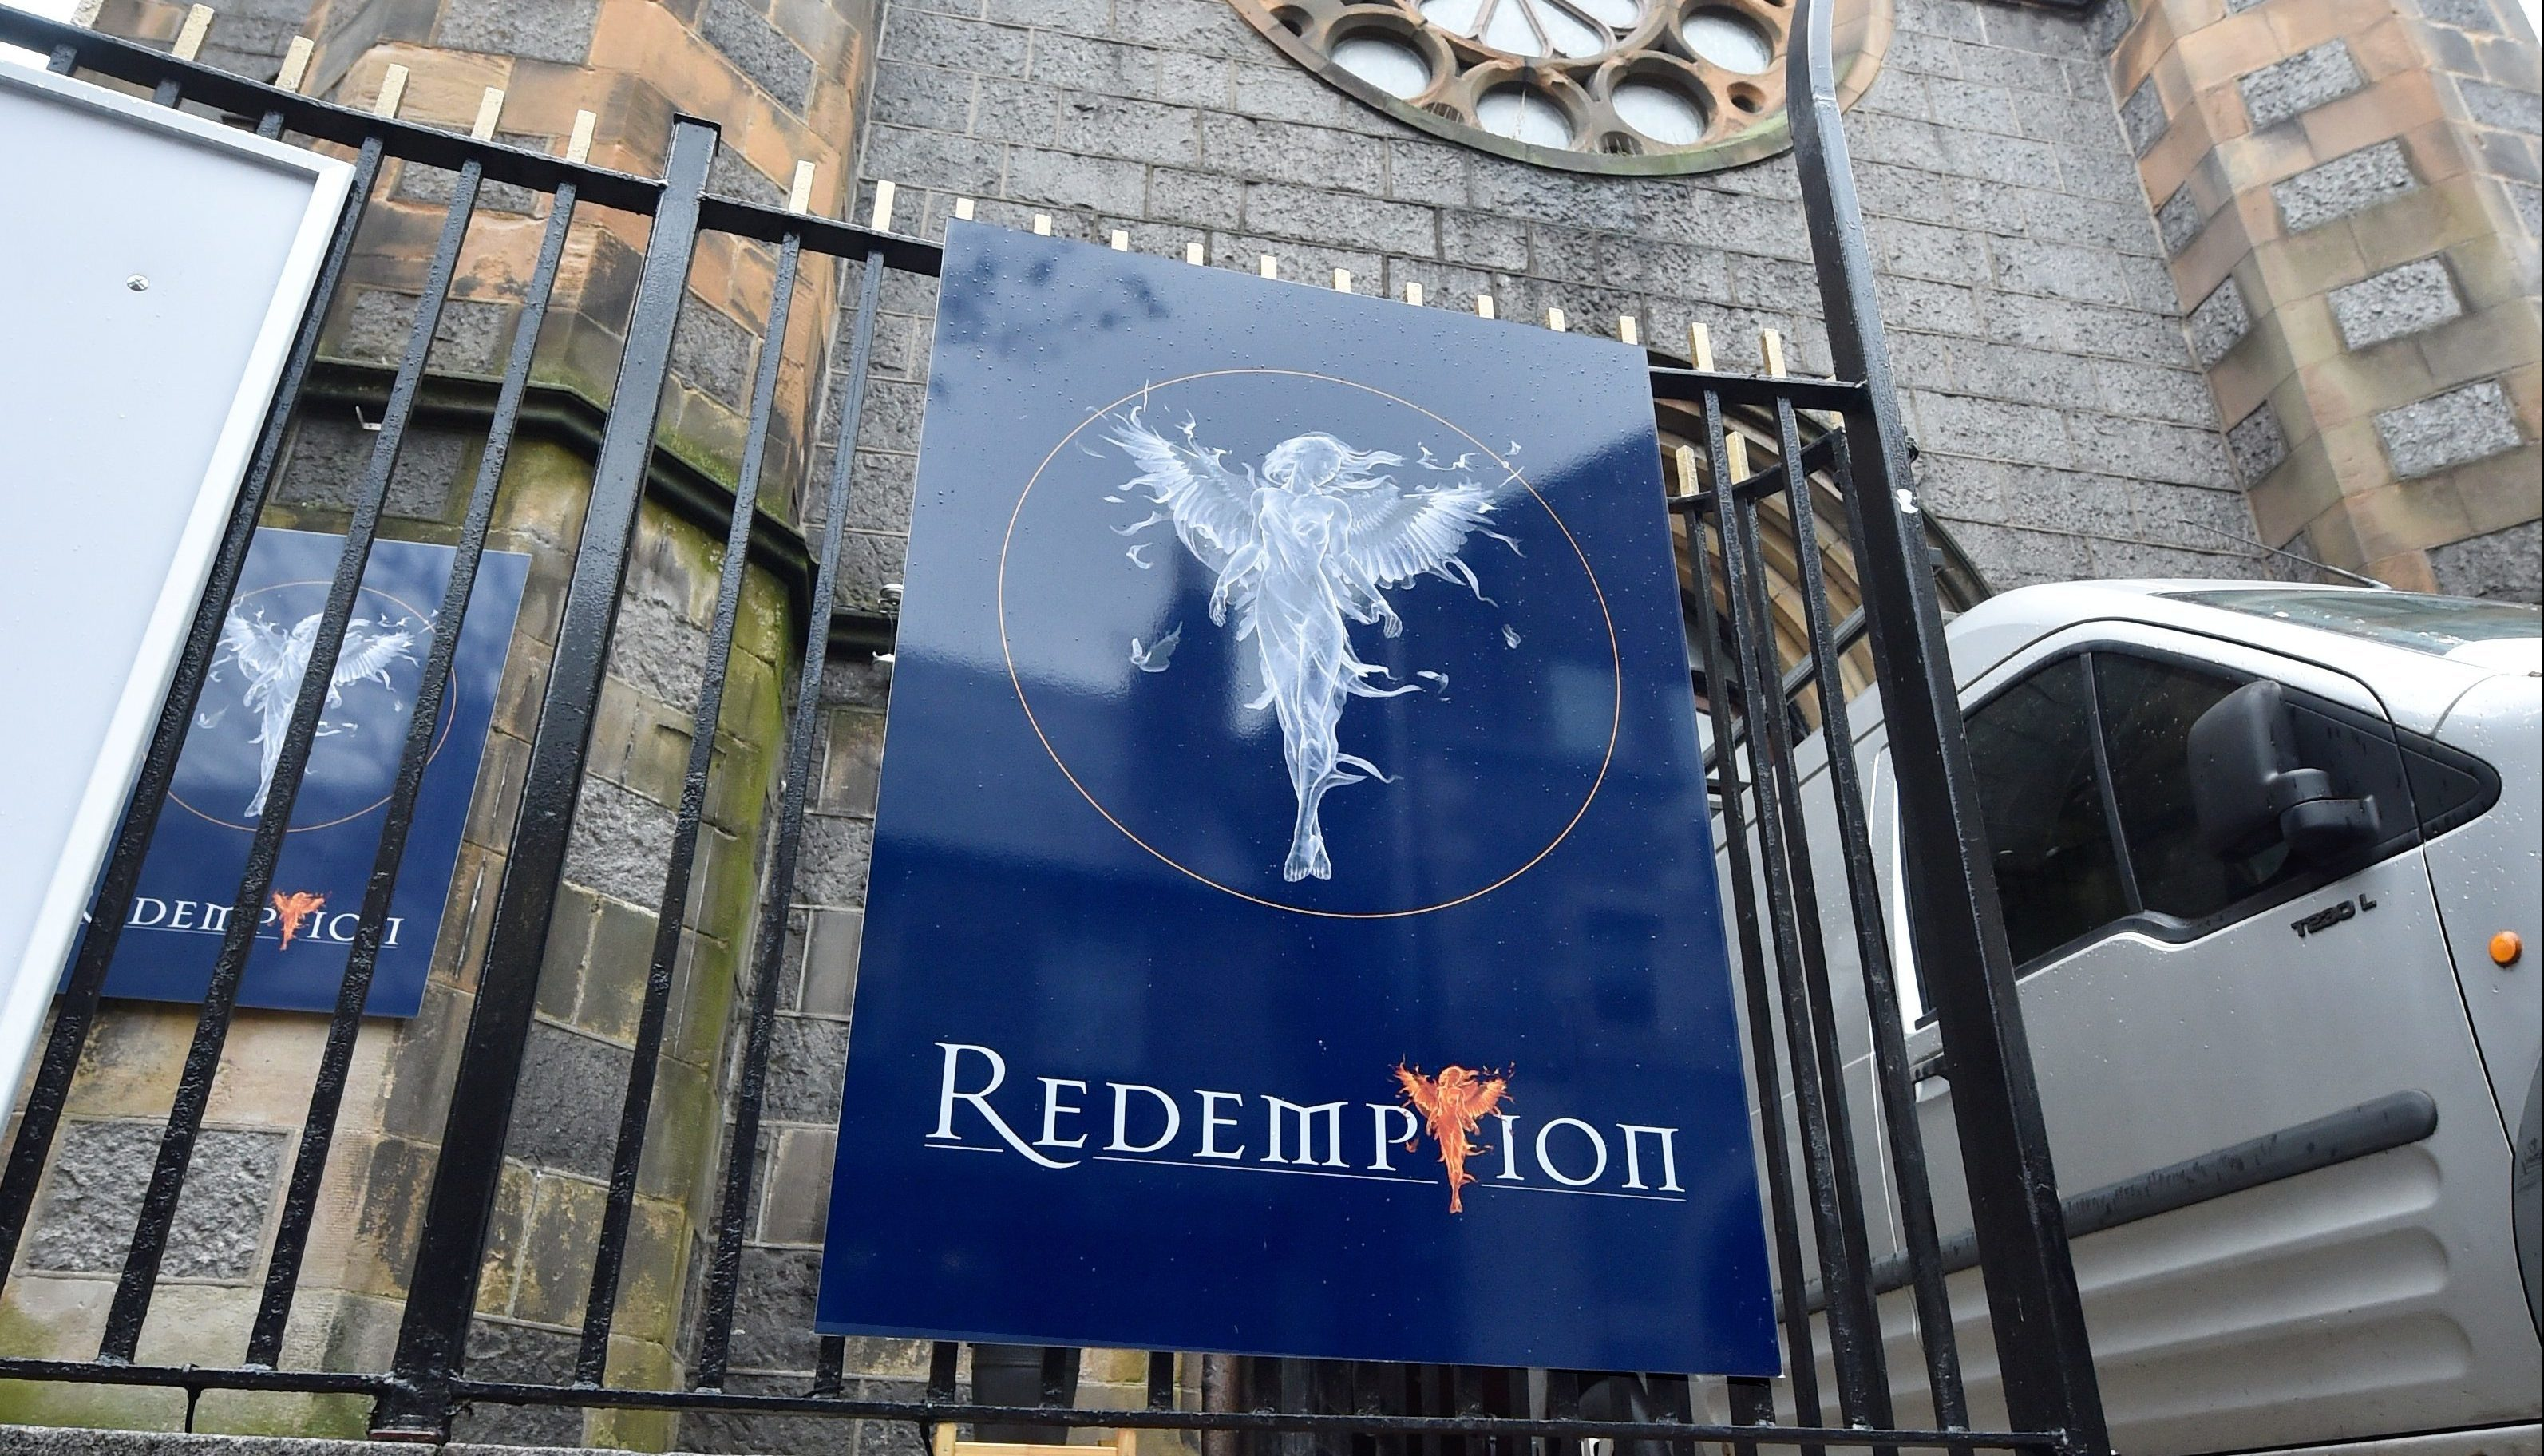 Redemption, previously known as The Priory, has shut down.